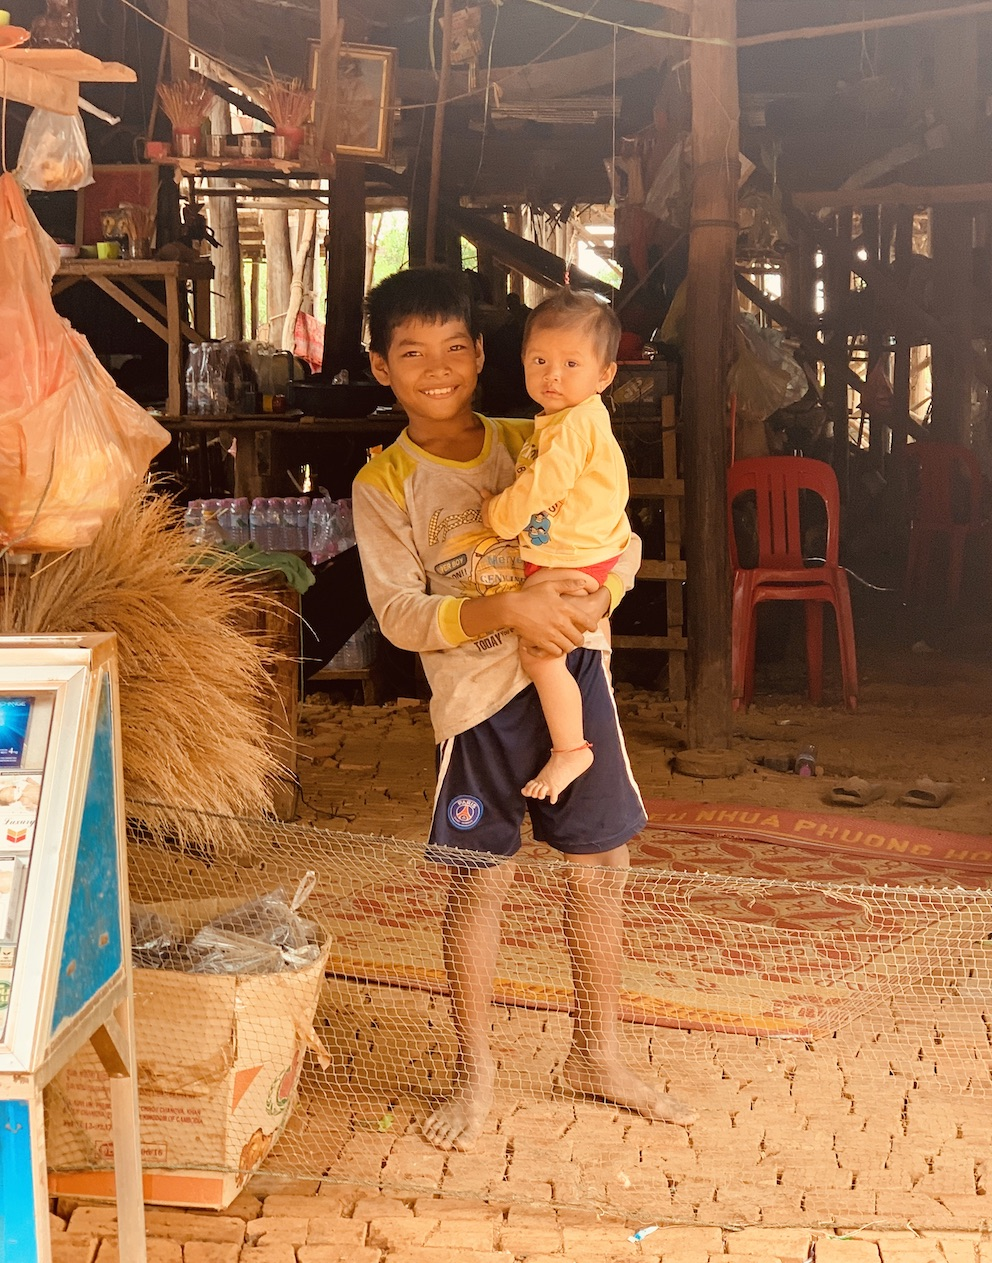 Khmer brothers Siem Reap Cambodia.